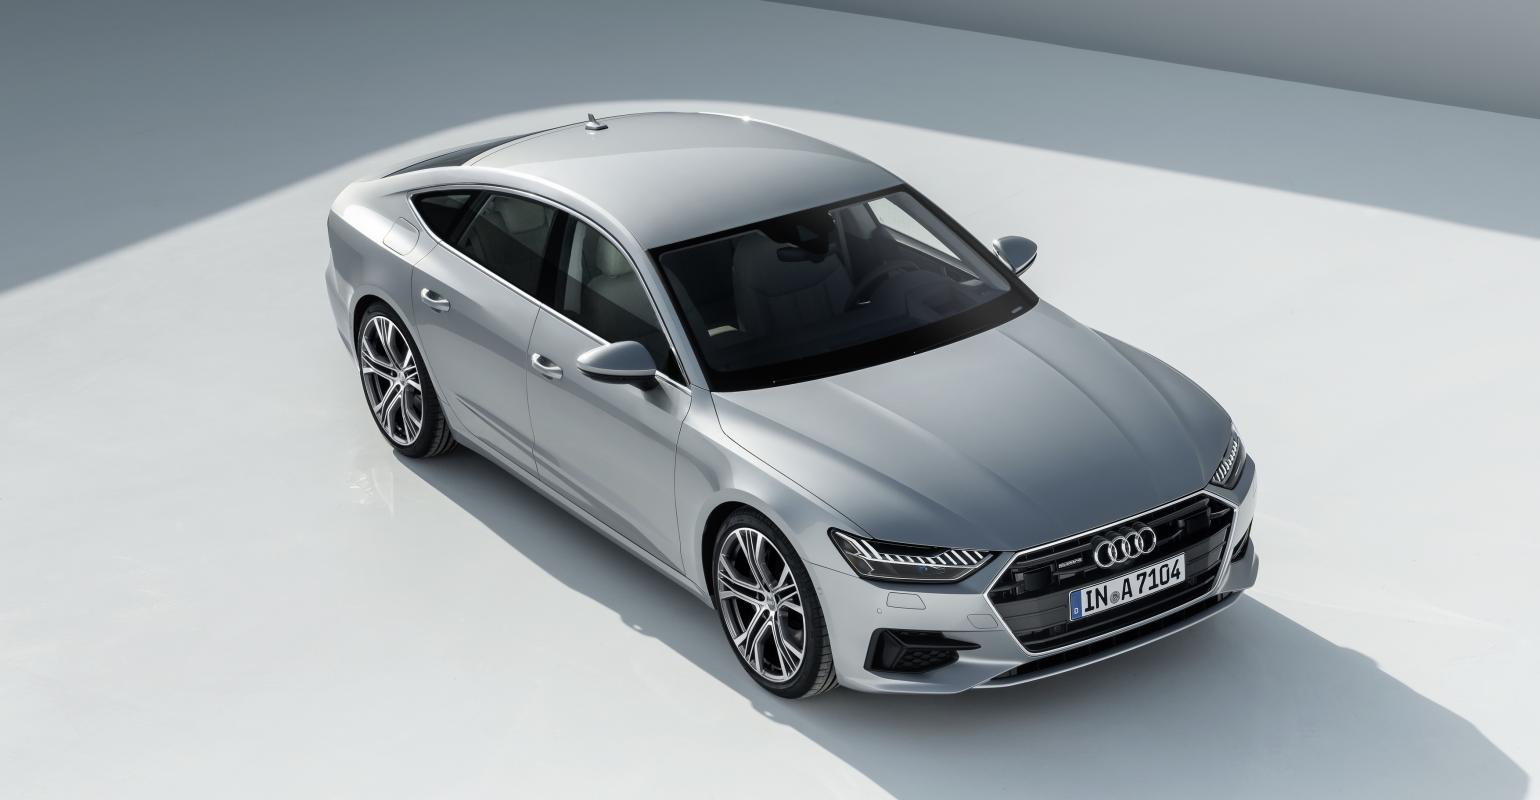 New Audi A7 S Exterior Sleek But Real Design Drama Inside The Cabin